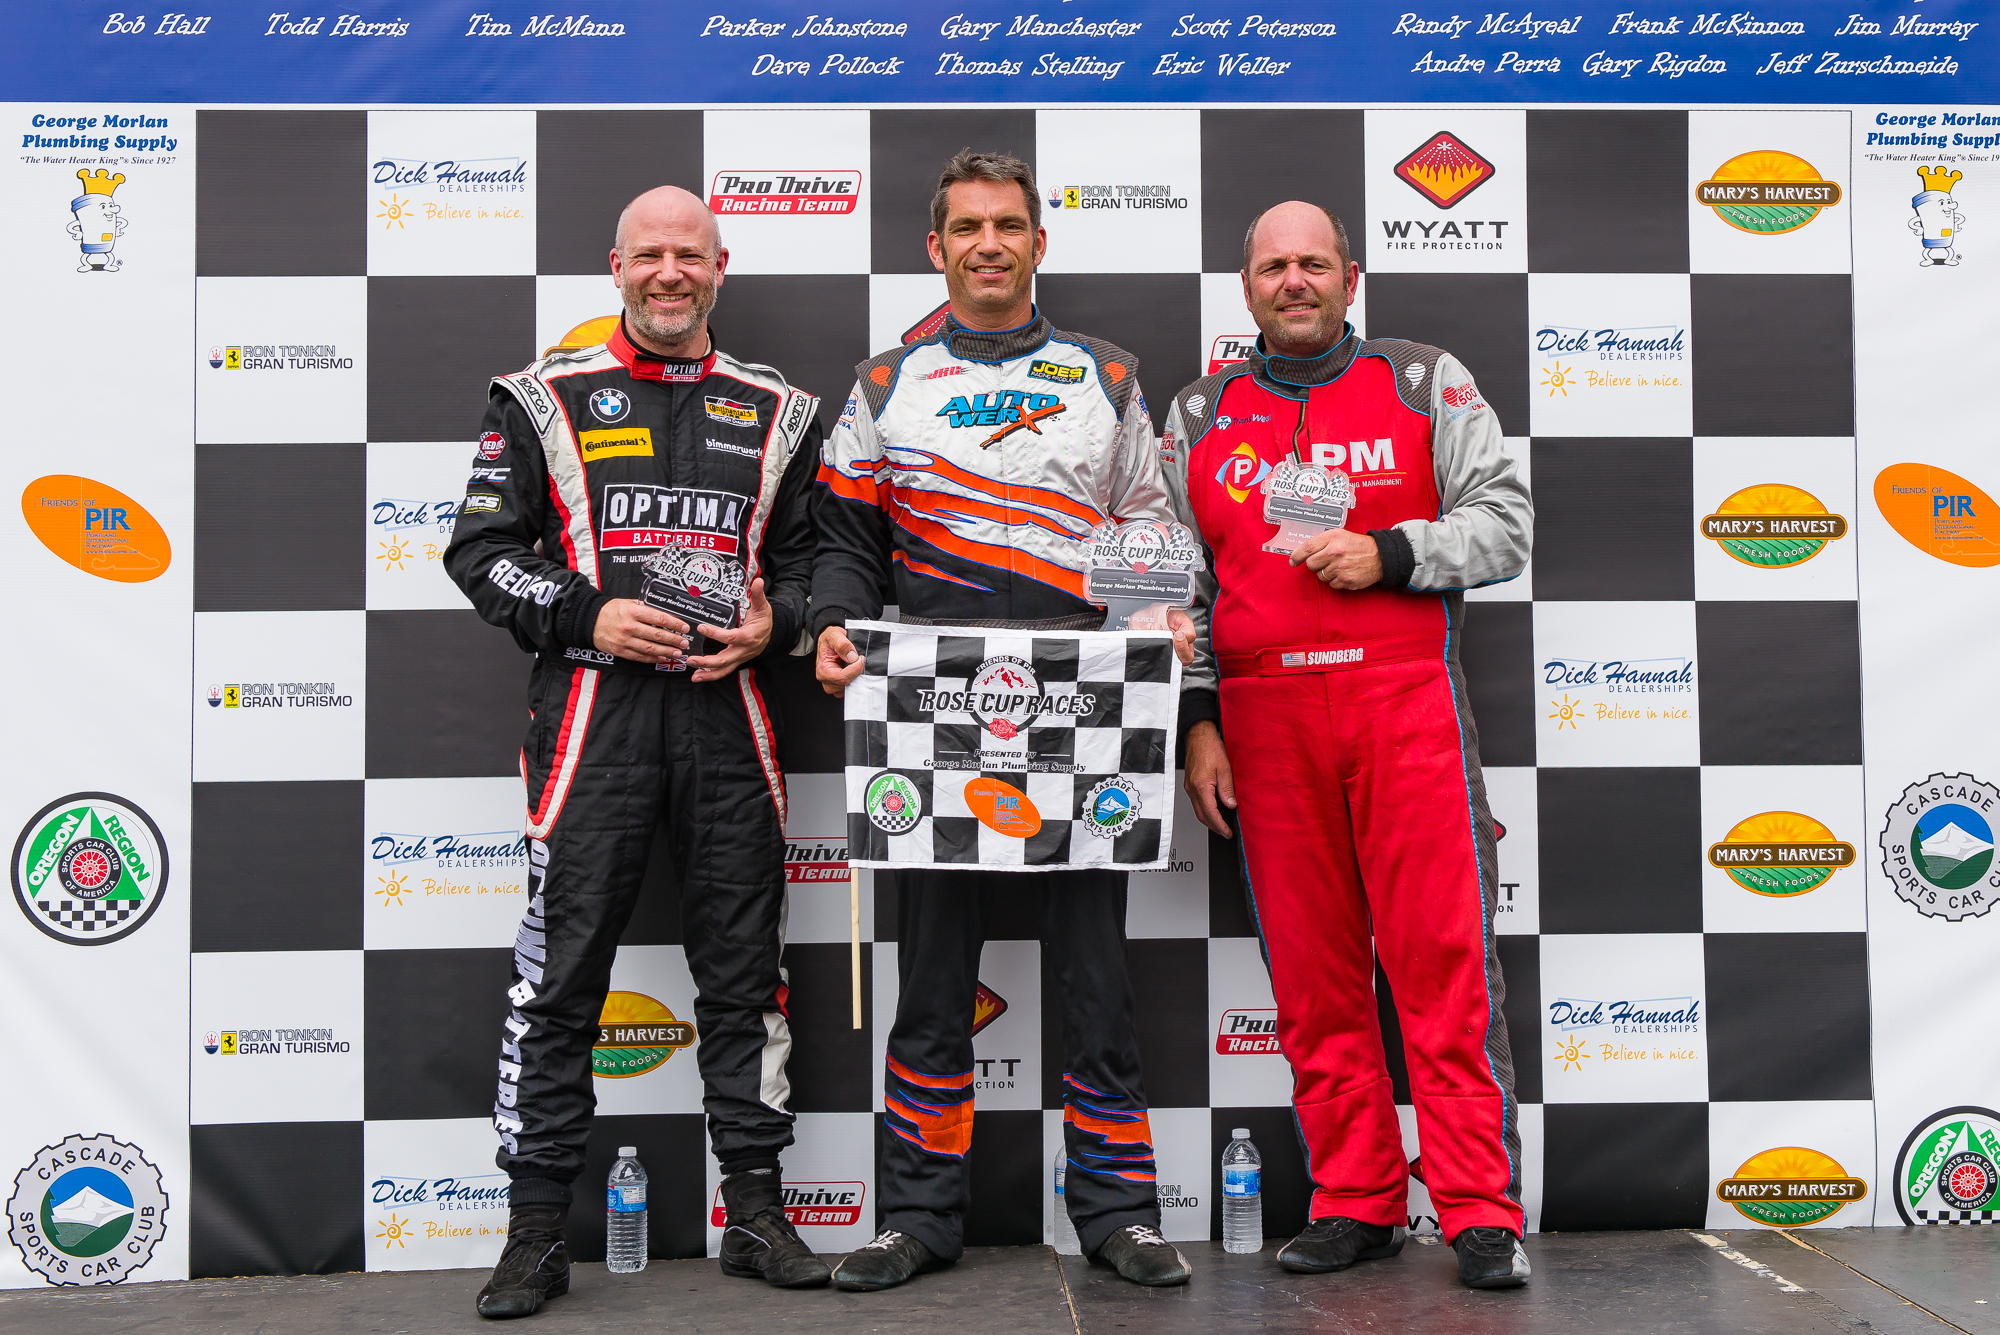 Podium finish (me left, Jason Fraser middle and Mark Sundberg right)at the Rose Cup was a great way to end what was a fantastic weekend!